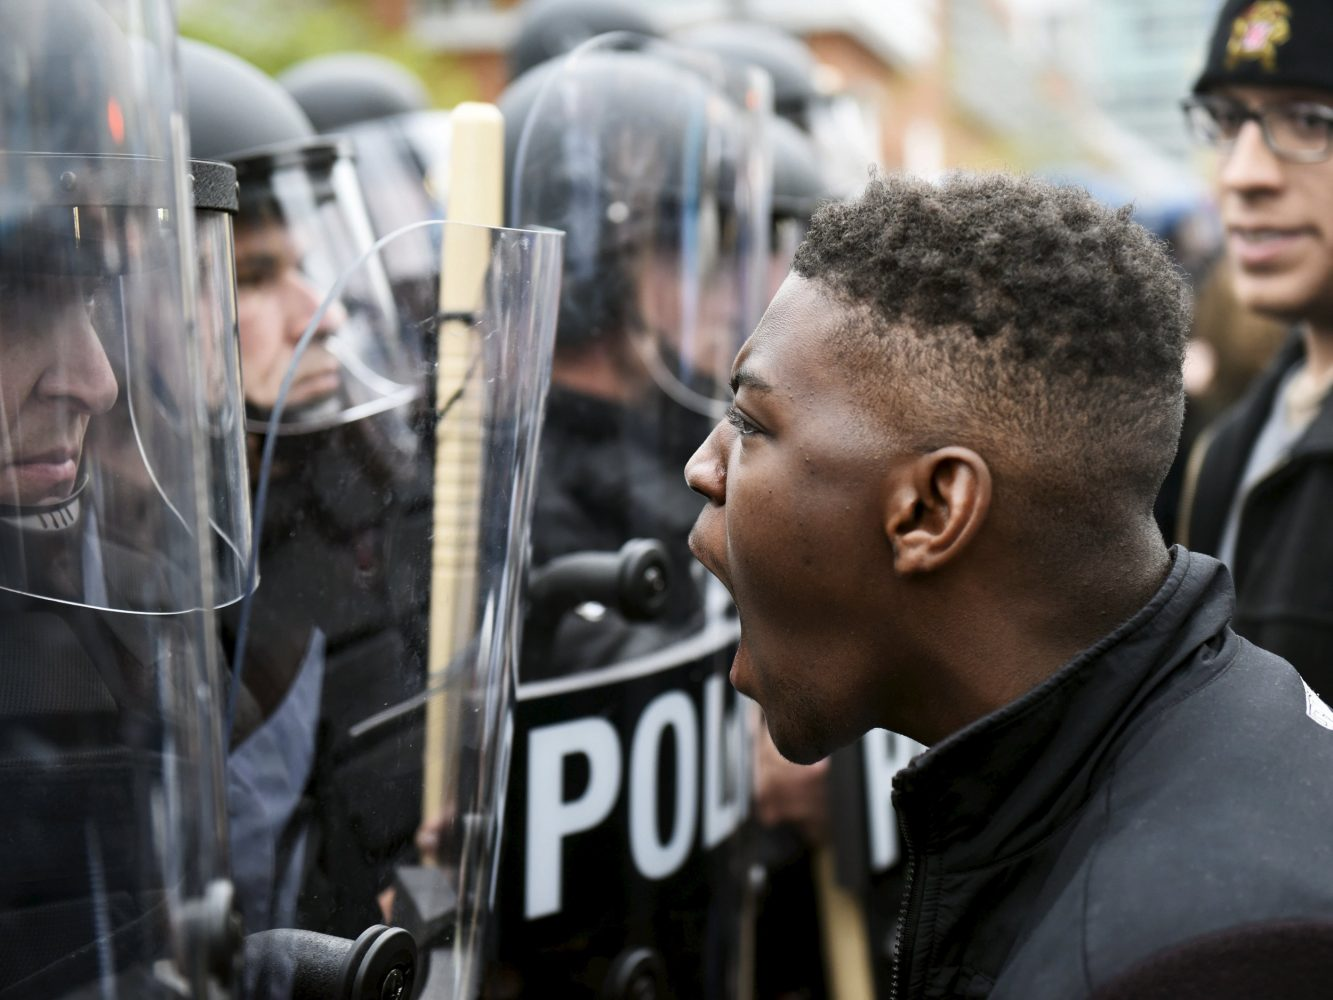 A demonstrator confronts police near Camden Yards during a protest against the death in police custody of Freddie Gray in Baltimore April 25, 2015. At least 2,000 people protesting the unexplained death of Gray, 25, while in police custody marched through downtown Baltimore on Saturday, pausing at one point to confront officers in front of Camden Yards, home of the Orioles baseball team. REUTERS/Sait Serkan Gurbuz